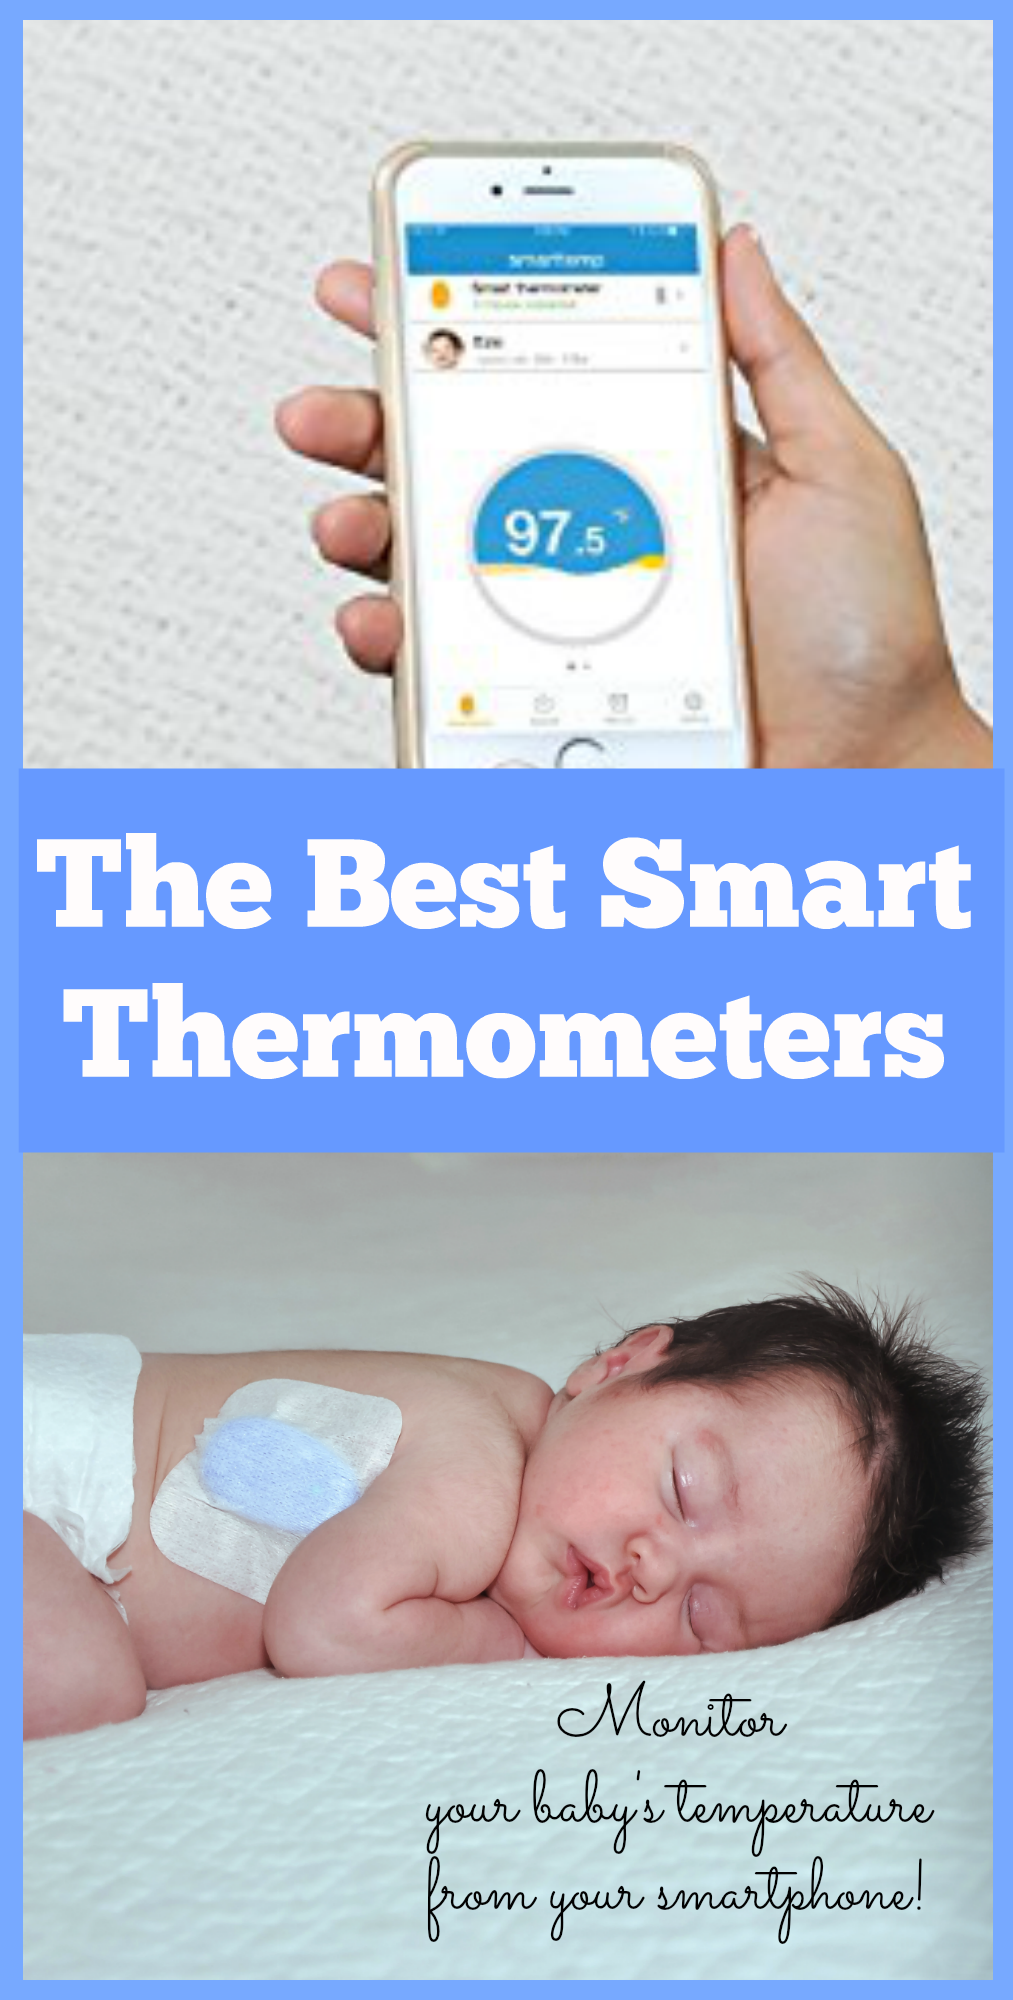 The Best Smart Thermometer for Babies and Infants | Infant, Babies ...